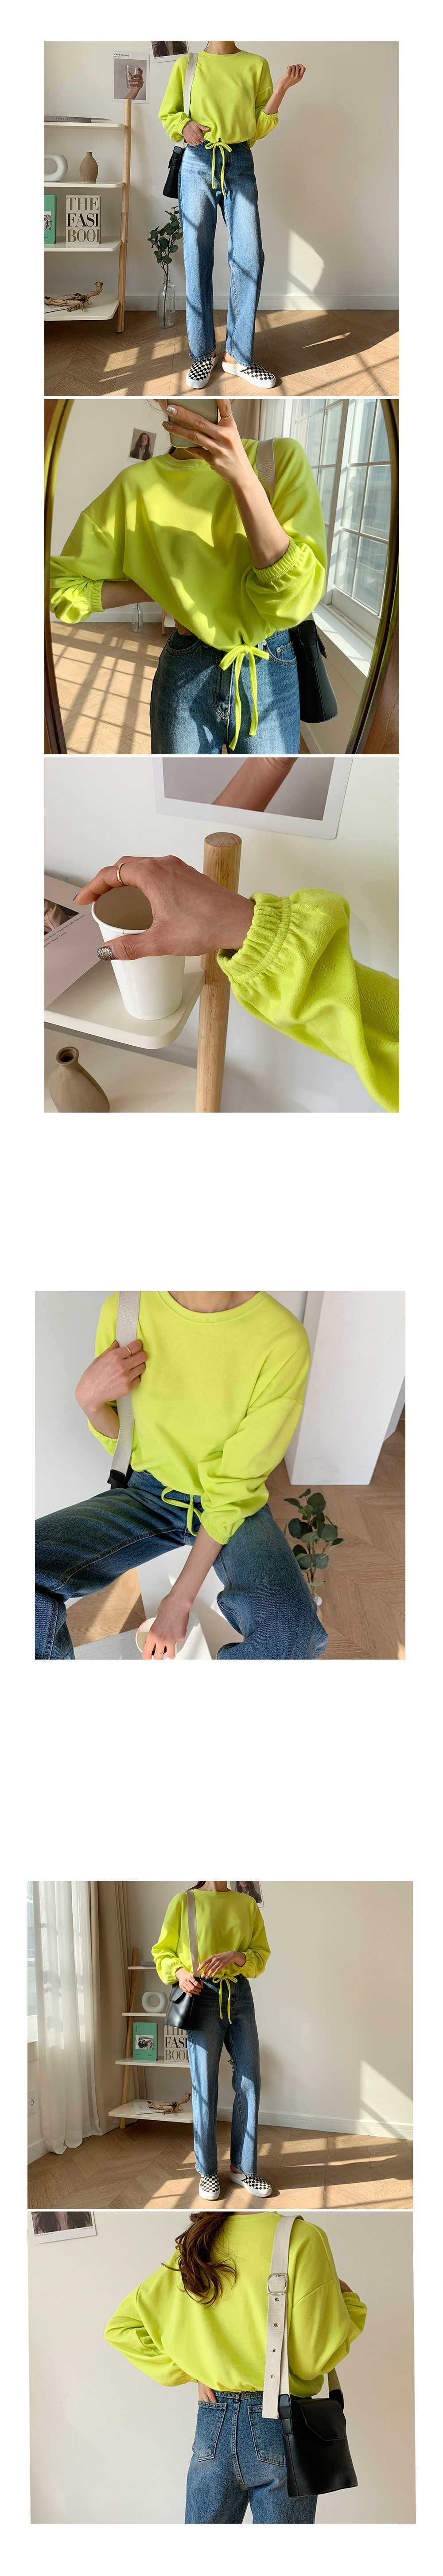 Molangyu String Cropped T-shirt